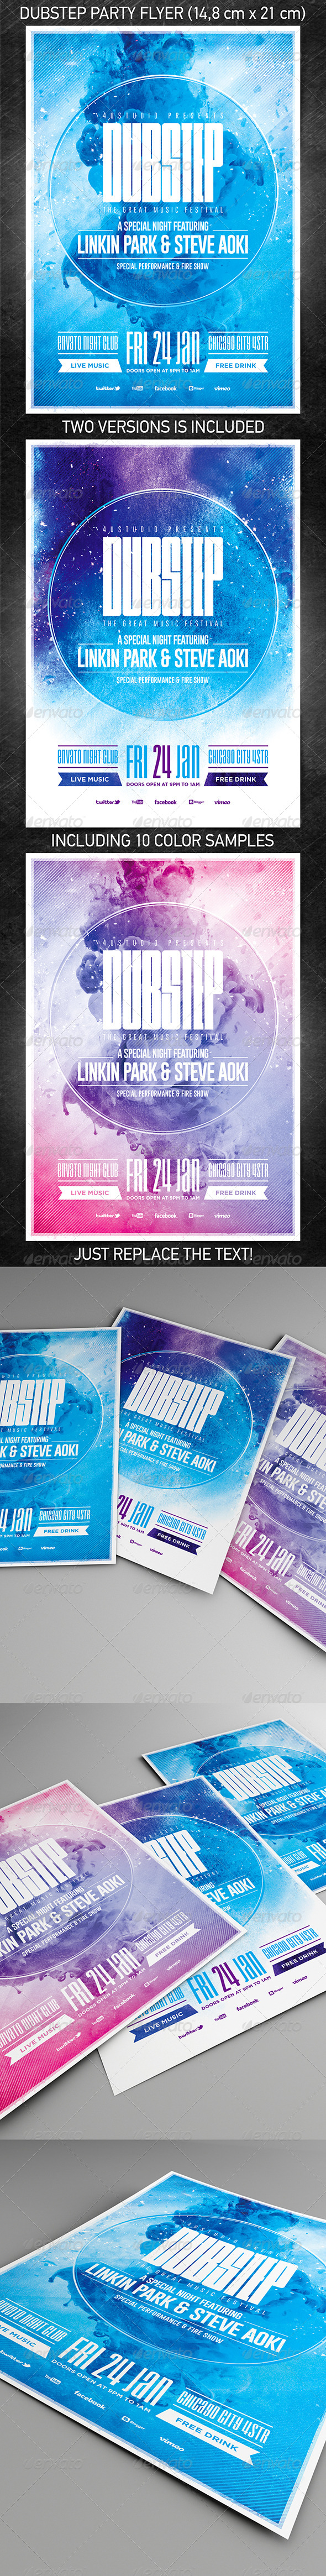 GraphicRiver Dubstep party flyer 6723720